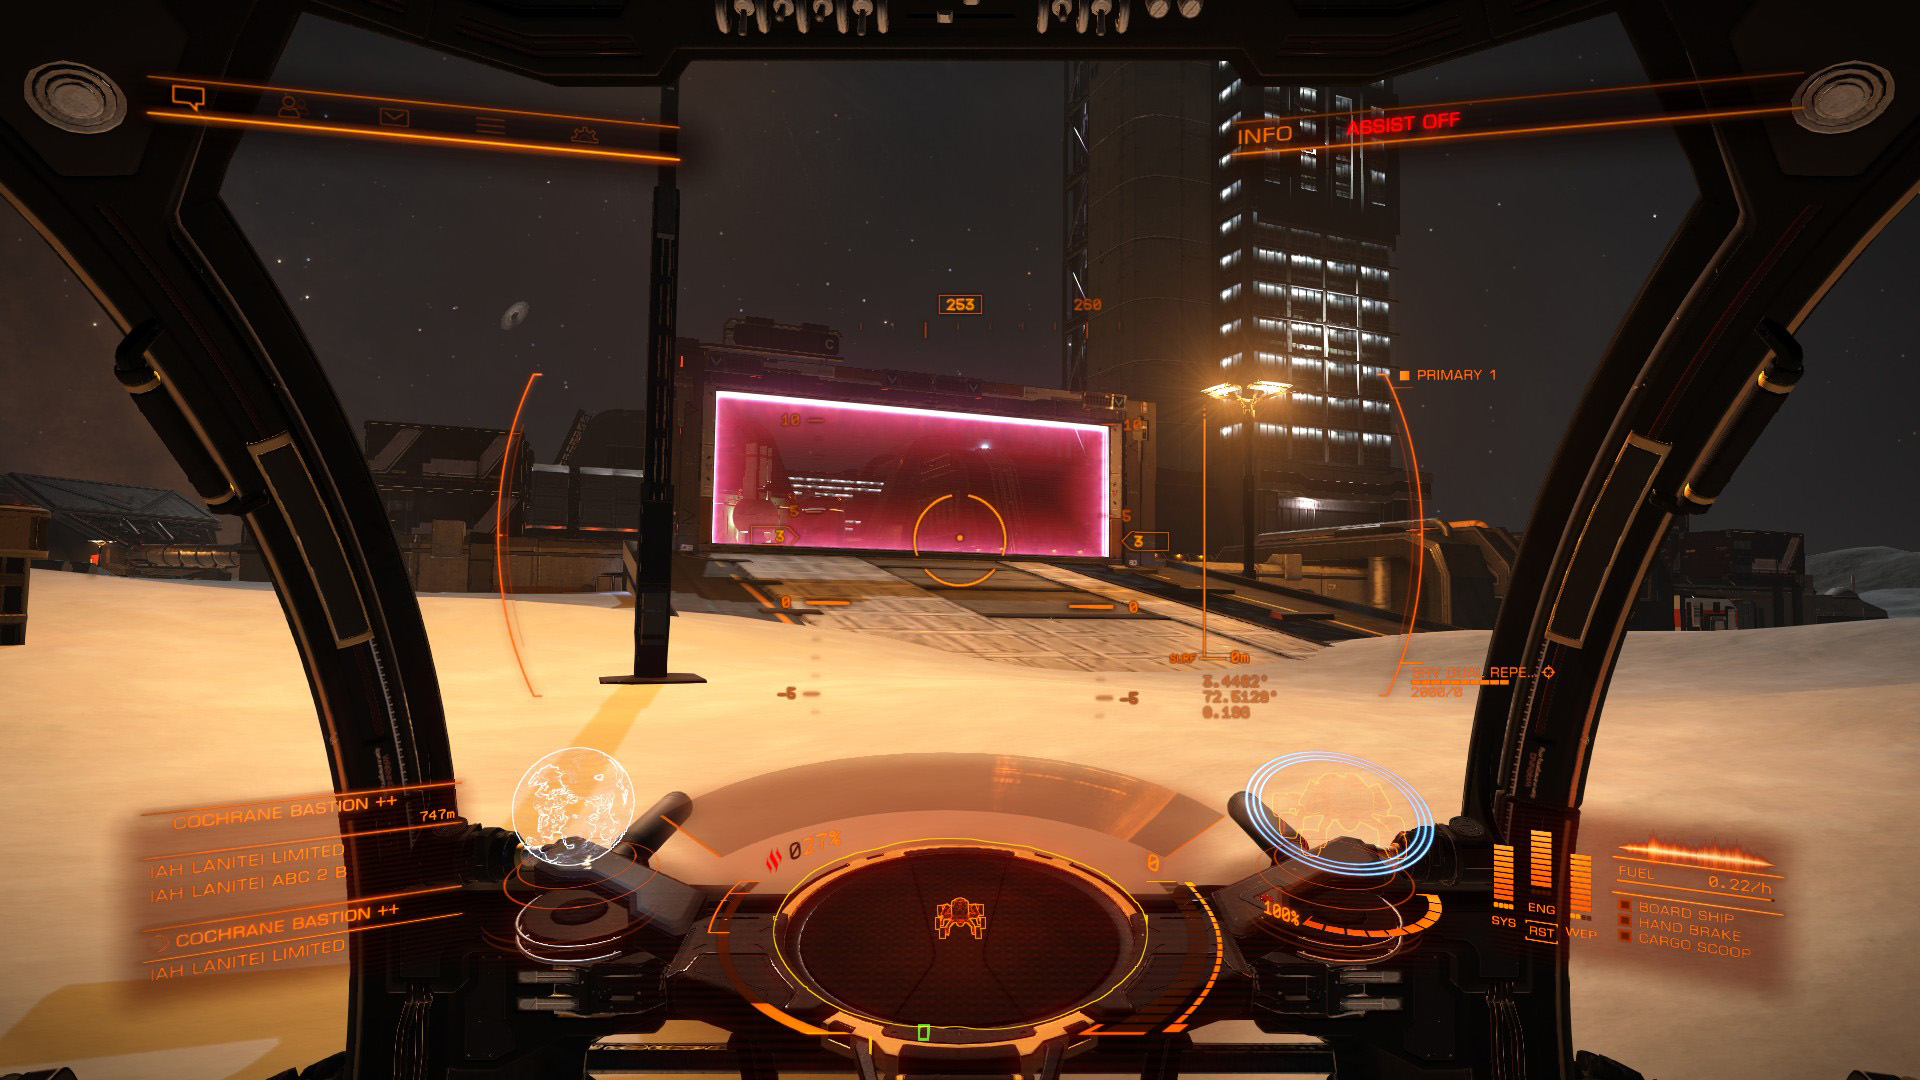 Elite: Dangerous beginner's guide: a screenshot showing a planetary security barrier